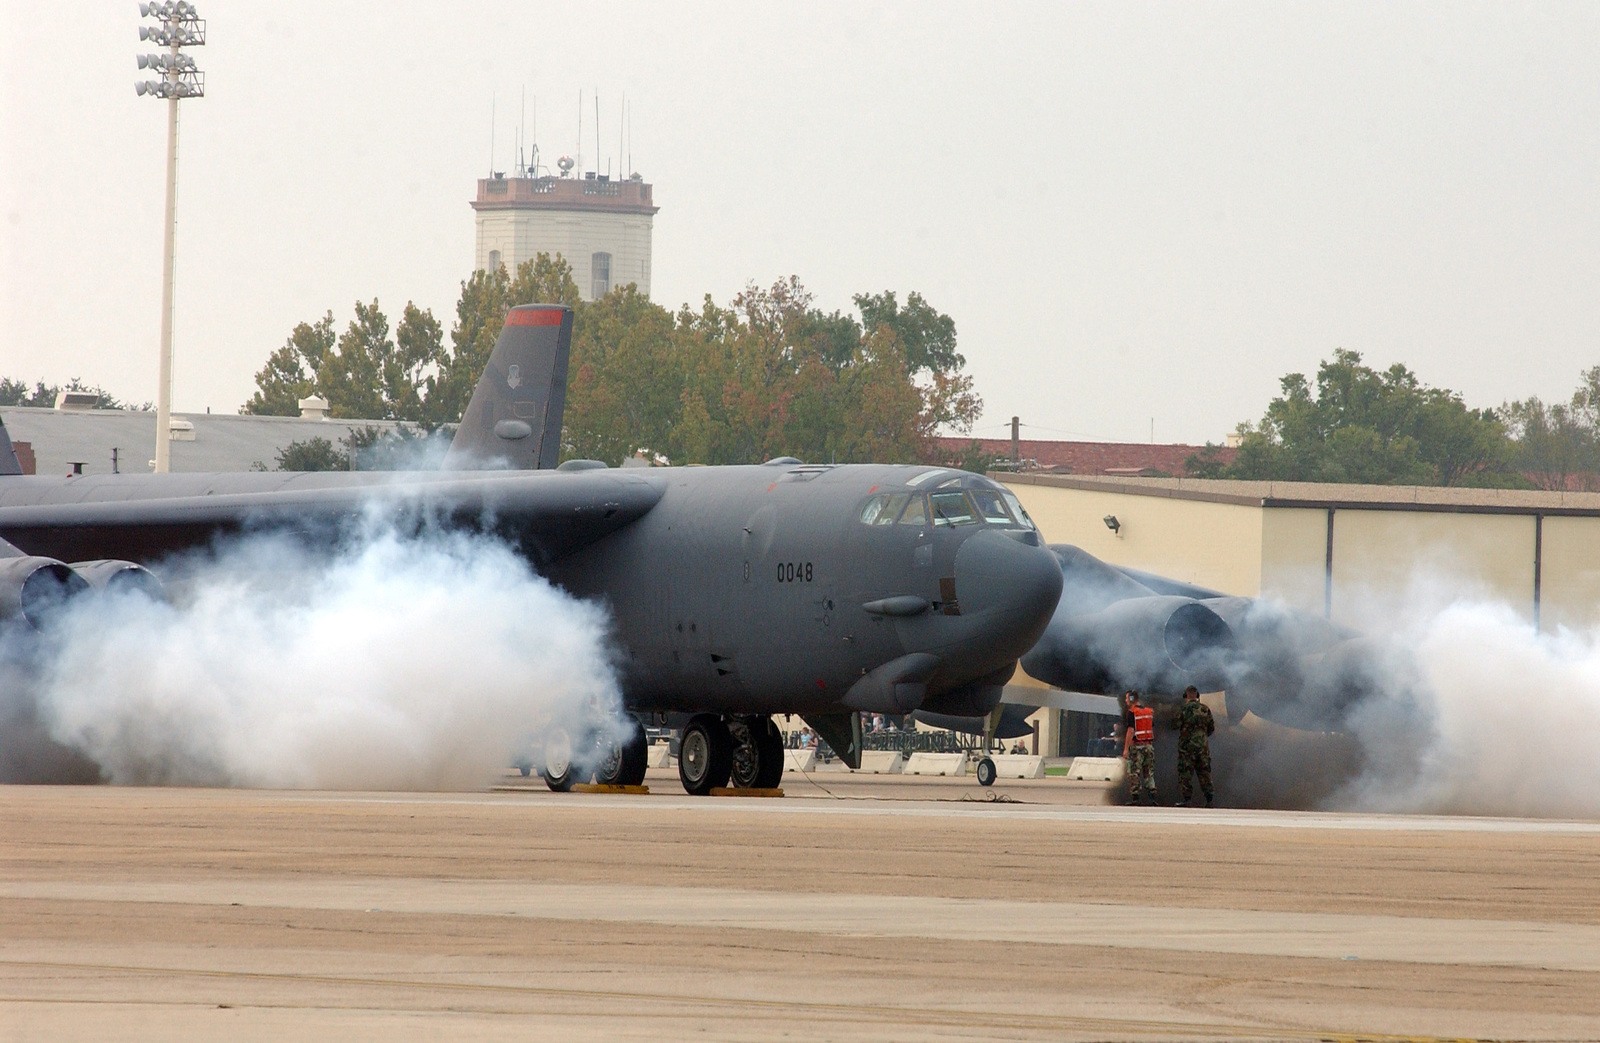 A U.S. Air Force B-52H Stratofortress aircraft from the 2nd Bomb Wing is enveloped in smoke as a starter cartridge starts its engines during an Operation Readiness Exercise at Barksdale Air Force Base, La., on Oct. 29, 2004. (USAF PHOTO by AIRMAN 1ST Class Trina Flannagan) (Released)